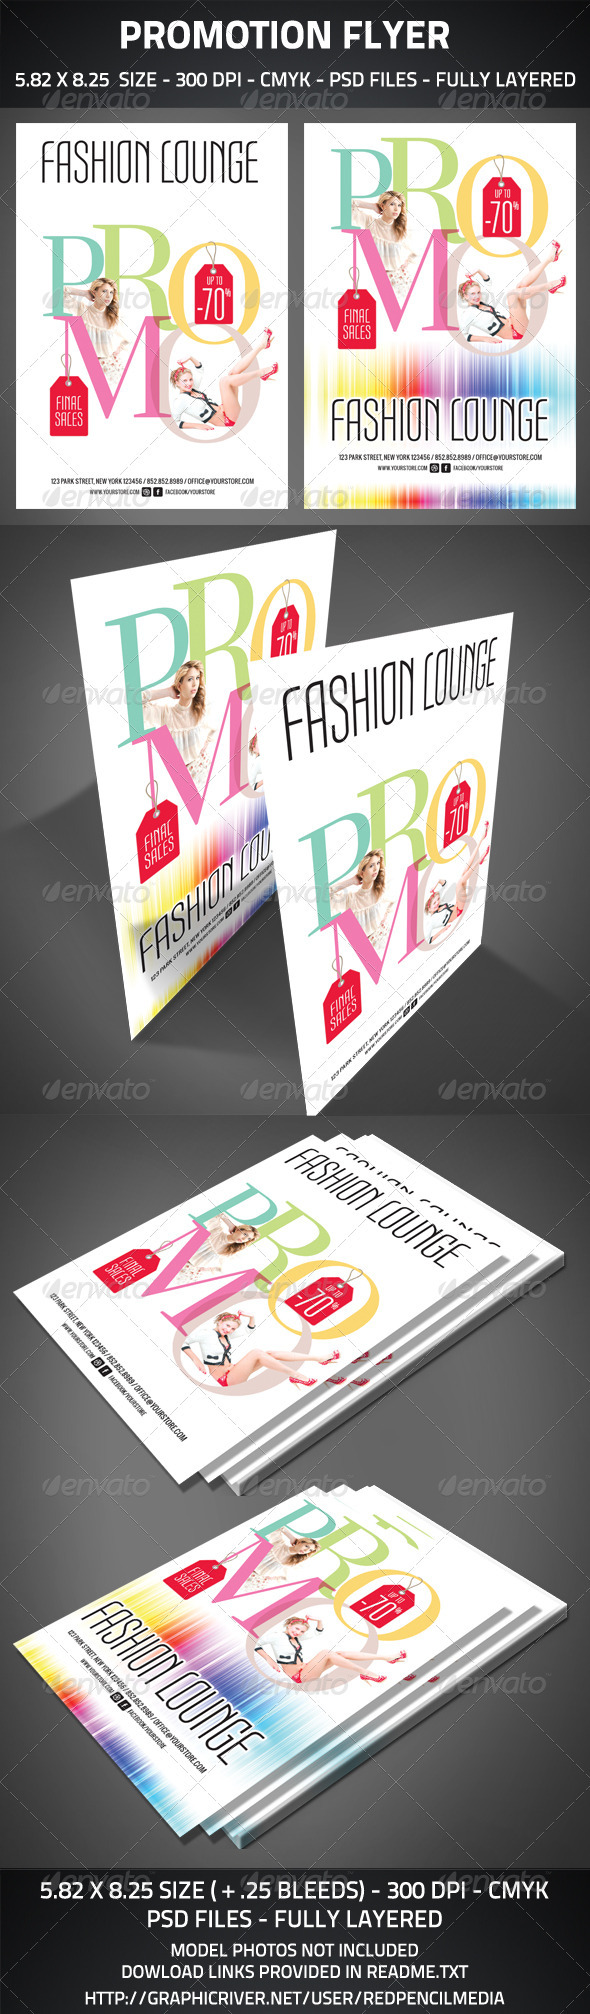 GraphicRiver Promotion Flyer 2878450